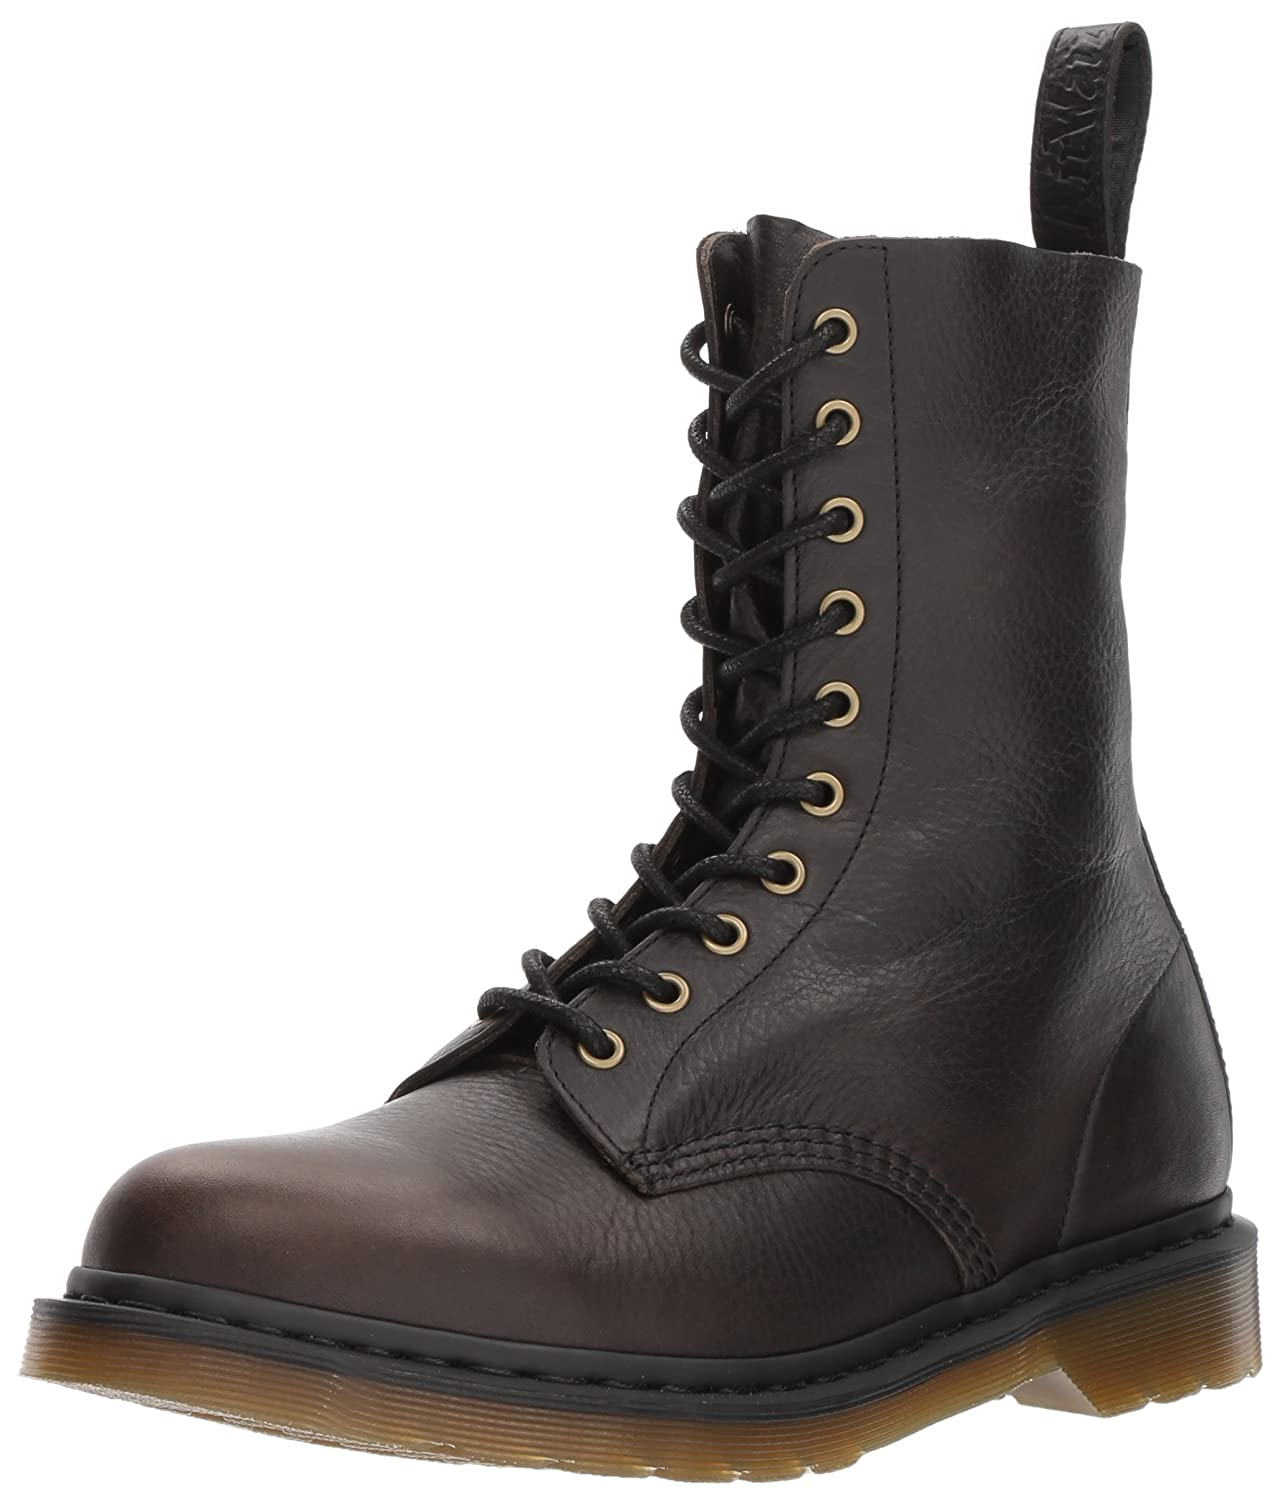 Dr. Martens 1490 Black Harvest Leather Fashion Boot B0721DM61V 7 Medium UK (US Women's 9, US Mens 8 US)|Black